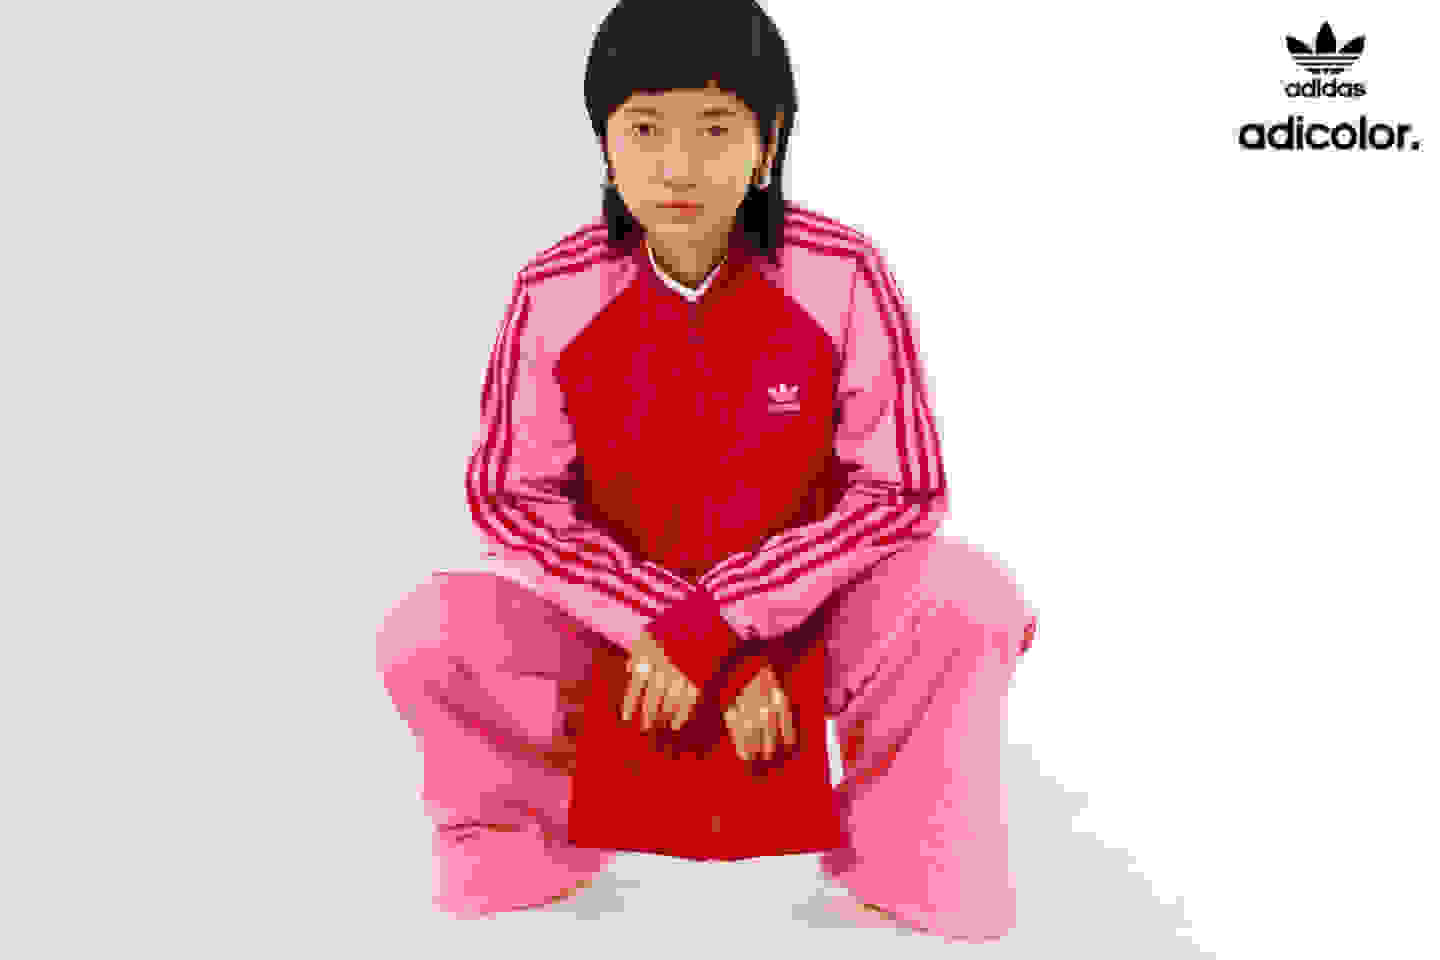 Stylish woman wearing classic red and pink adicolor tracksuit